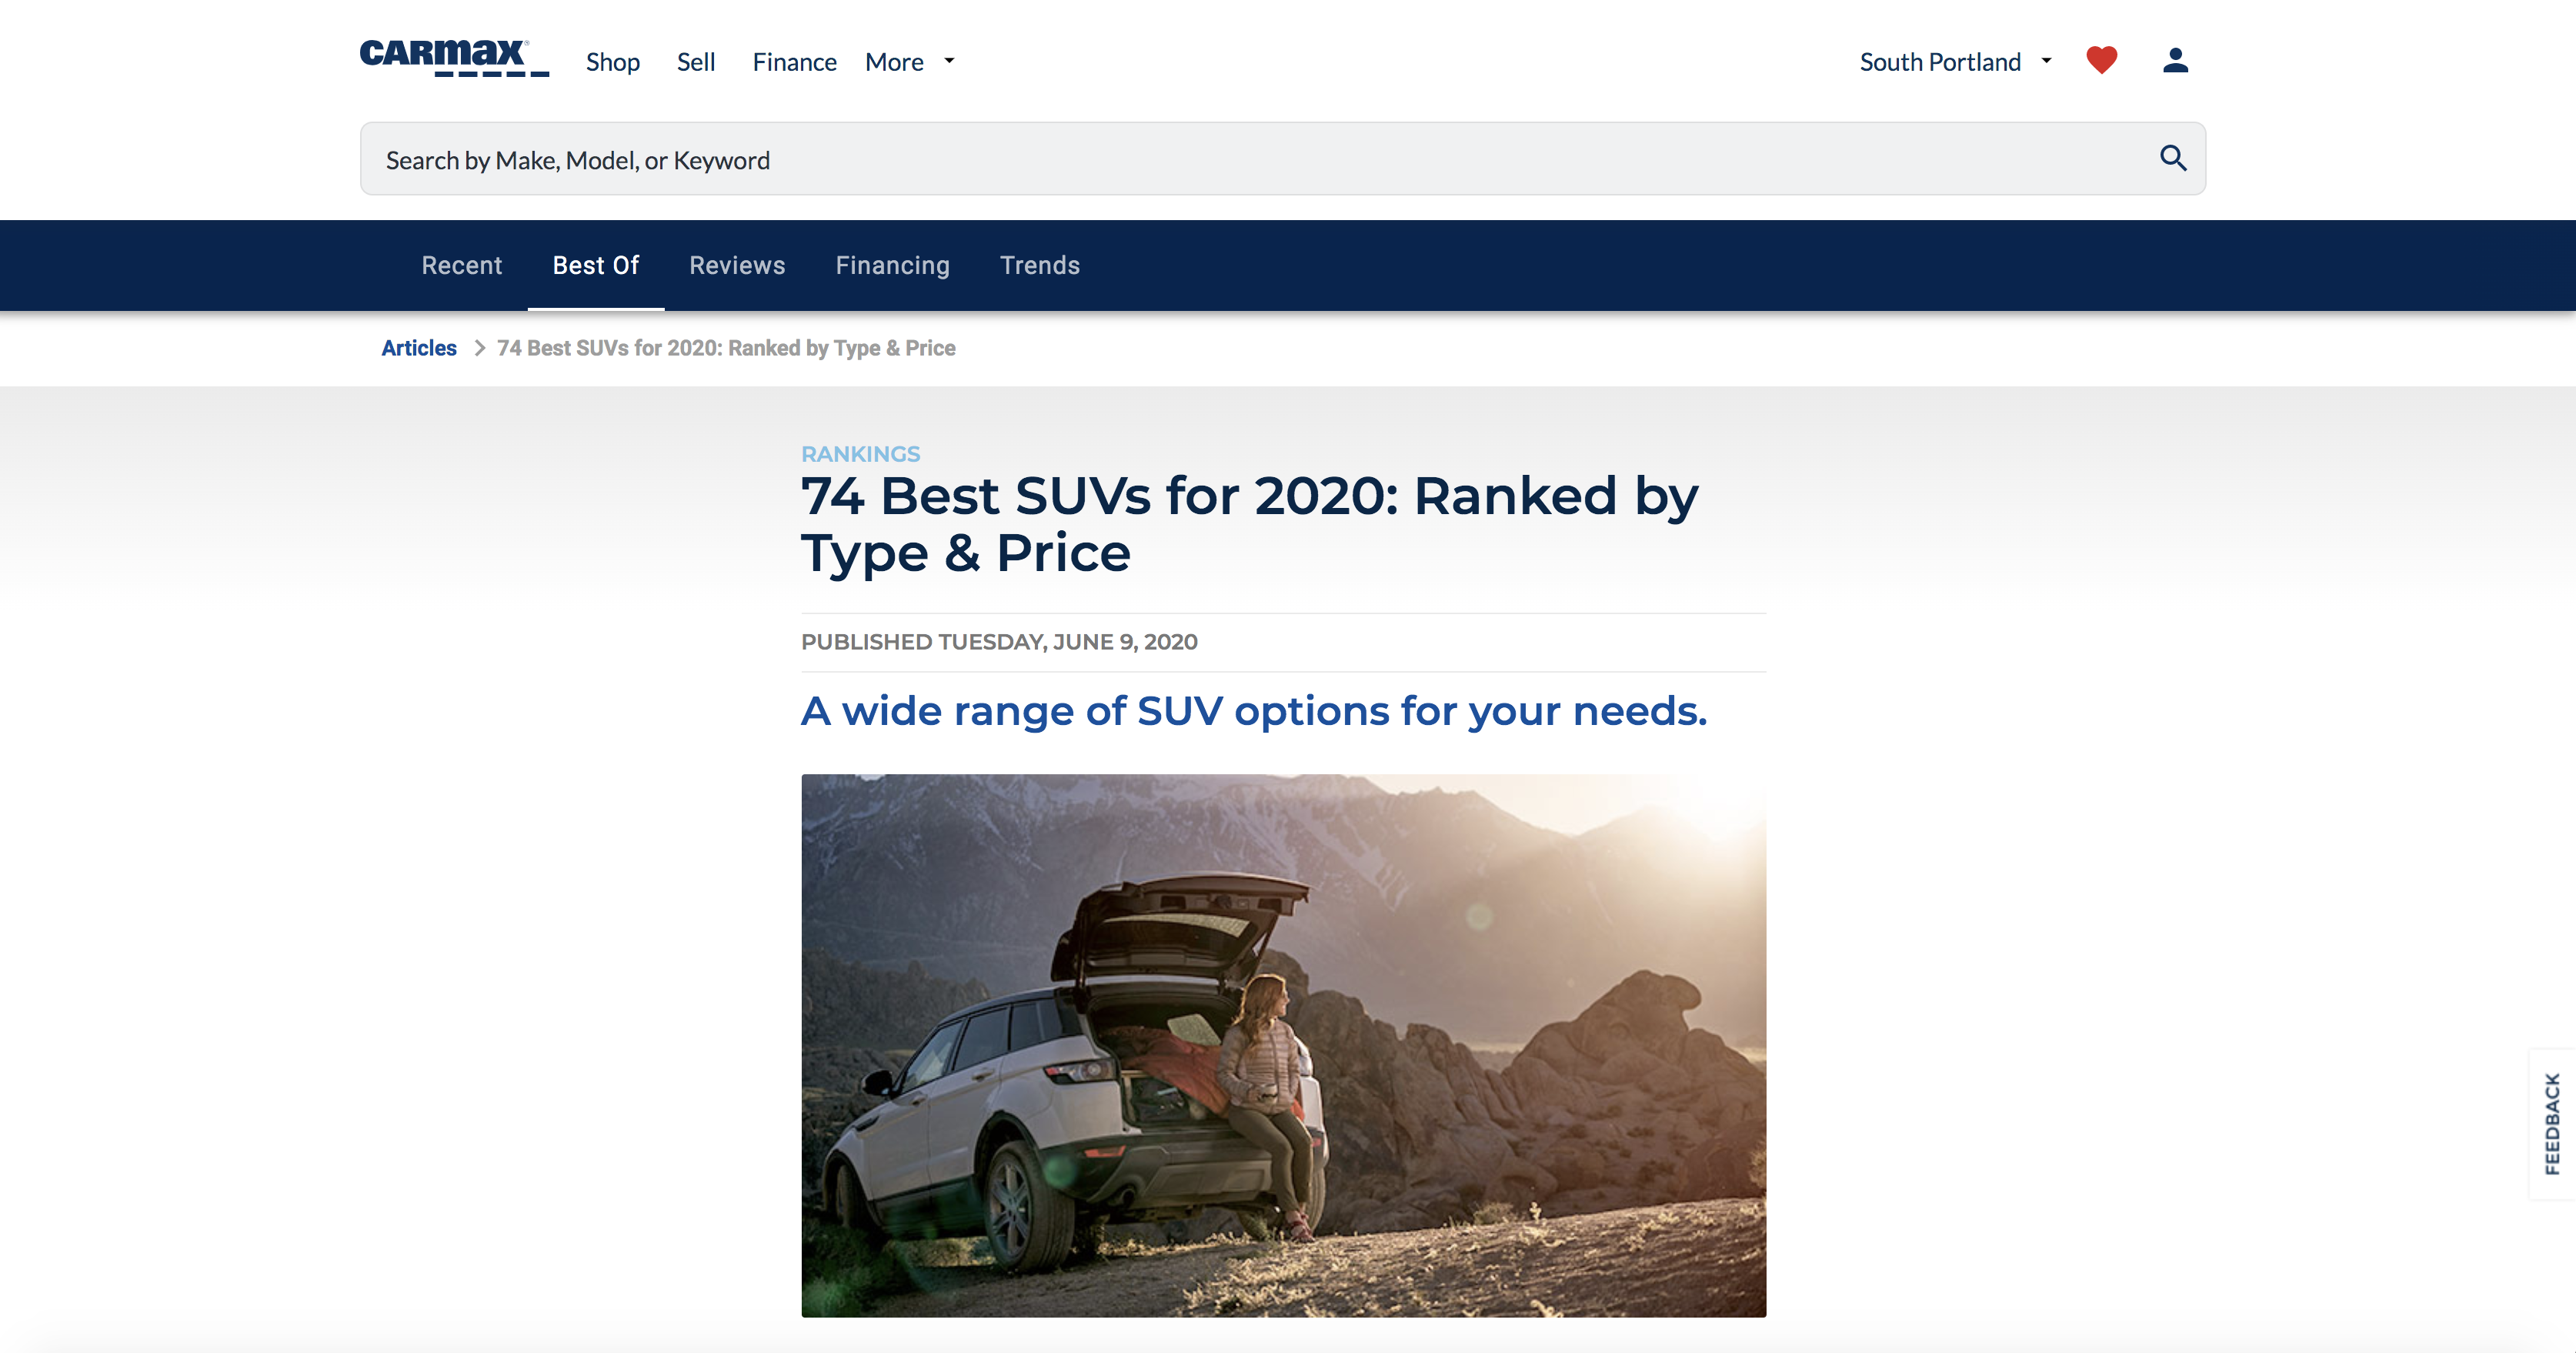 Example of an informational page, best SUVs